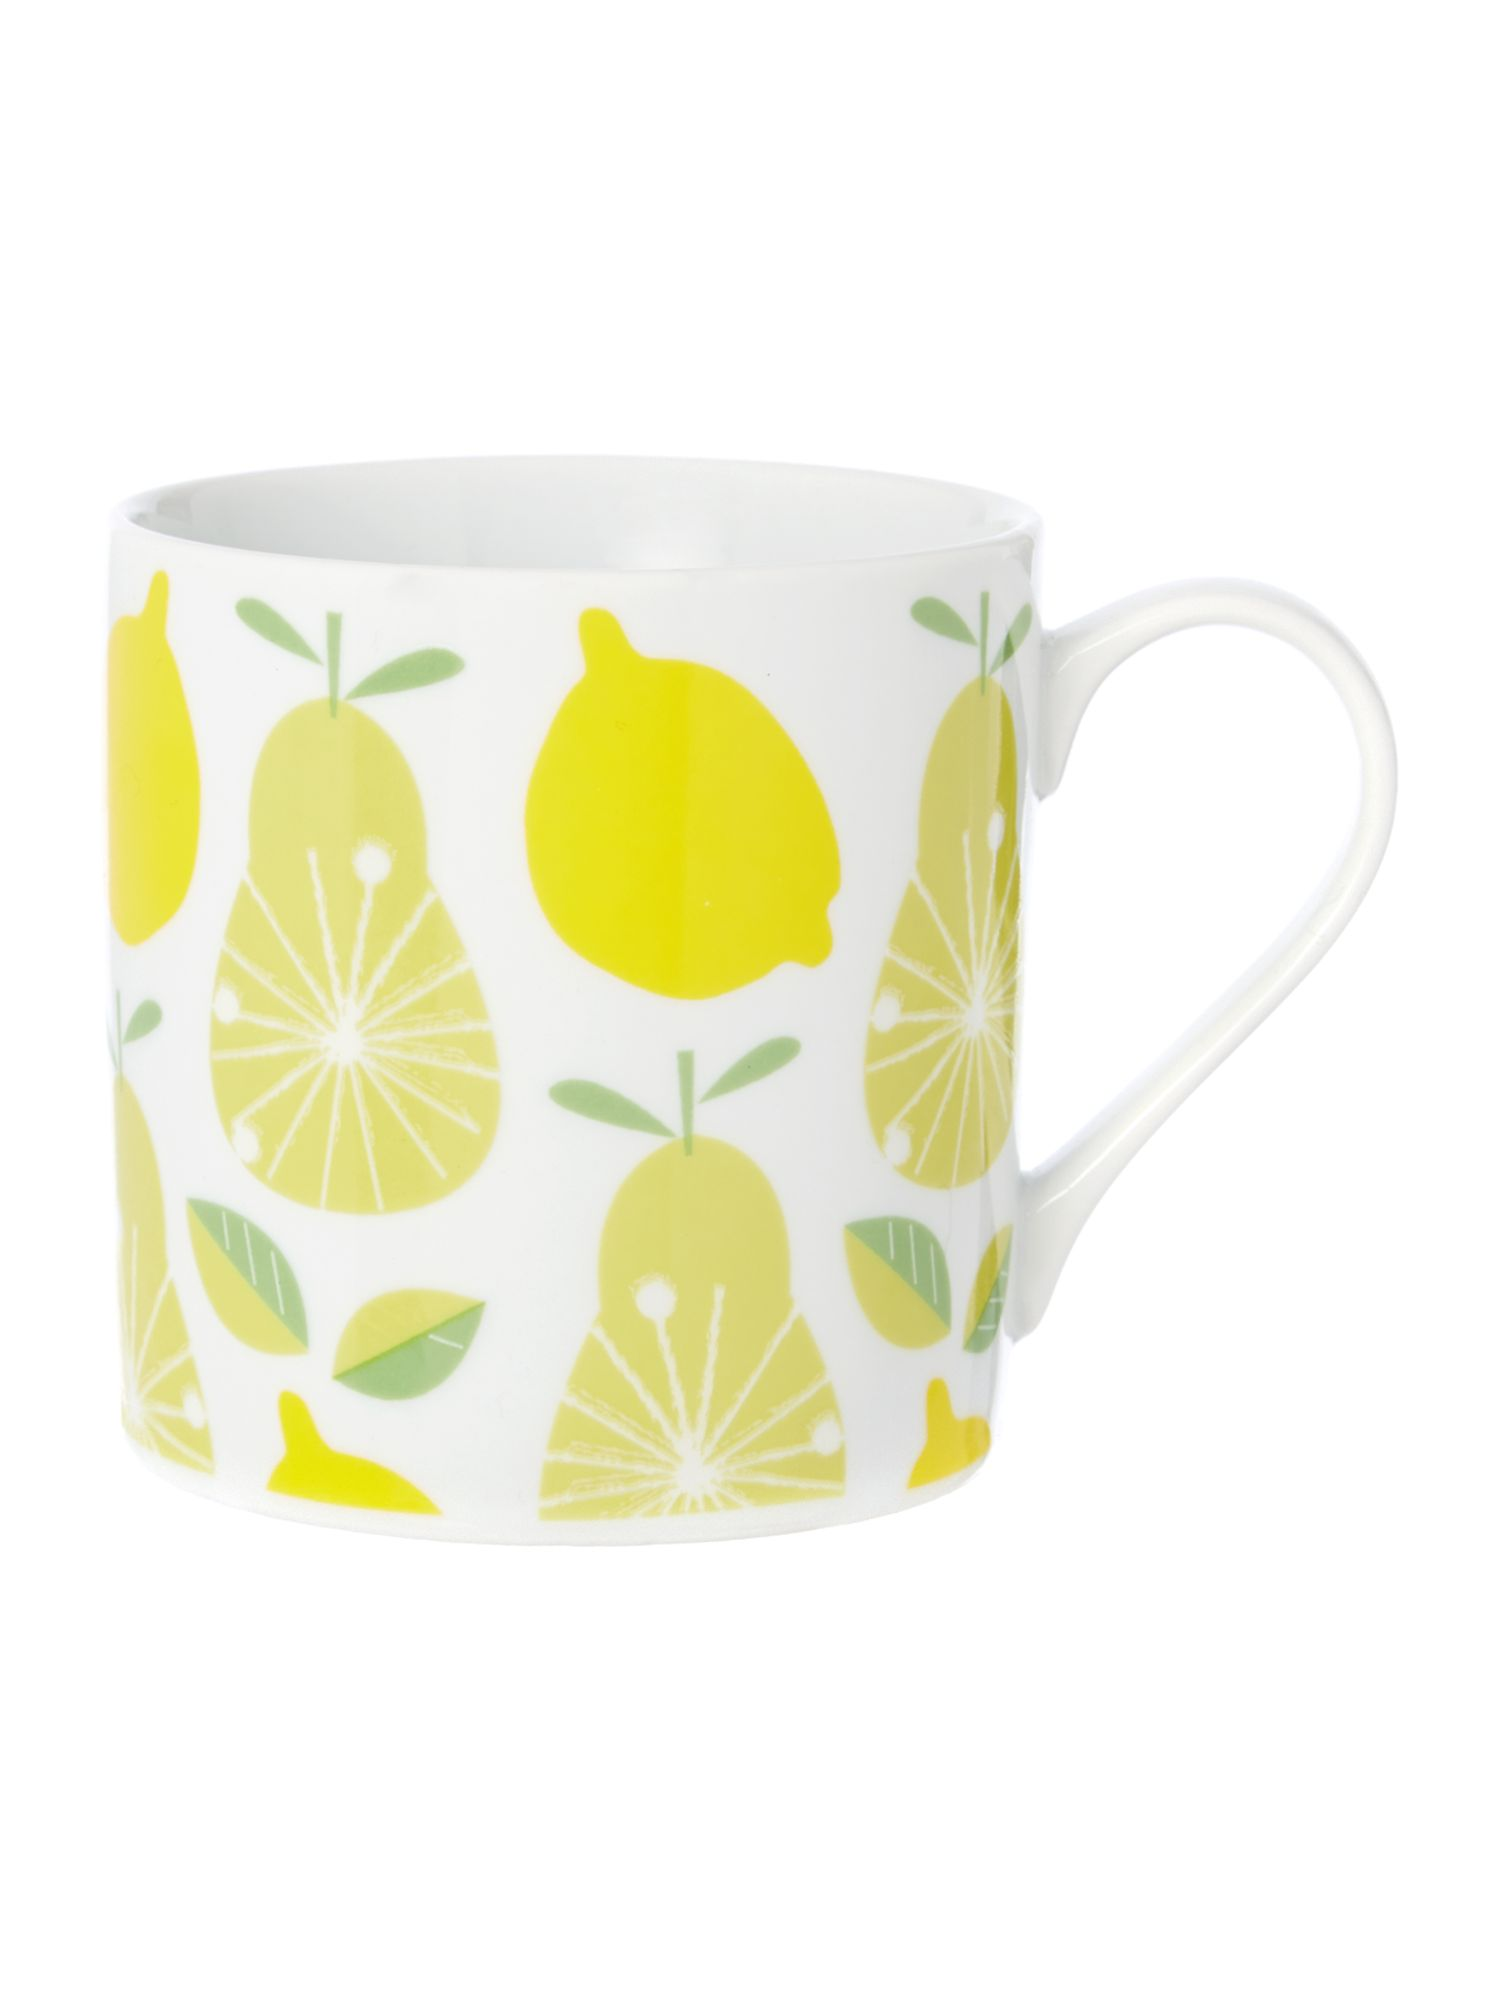 Linea Michelle Mason lemon and pear mug